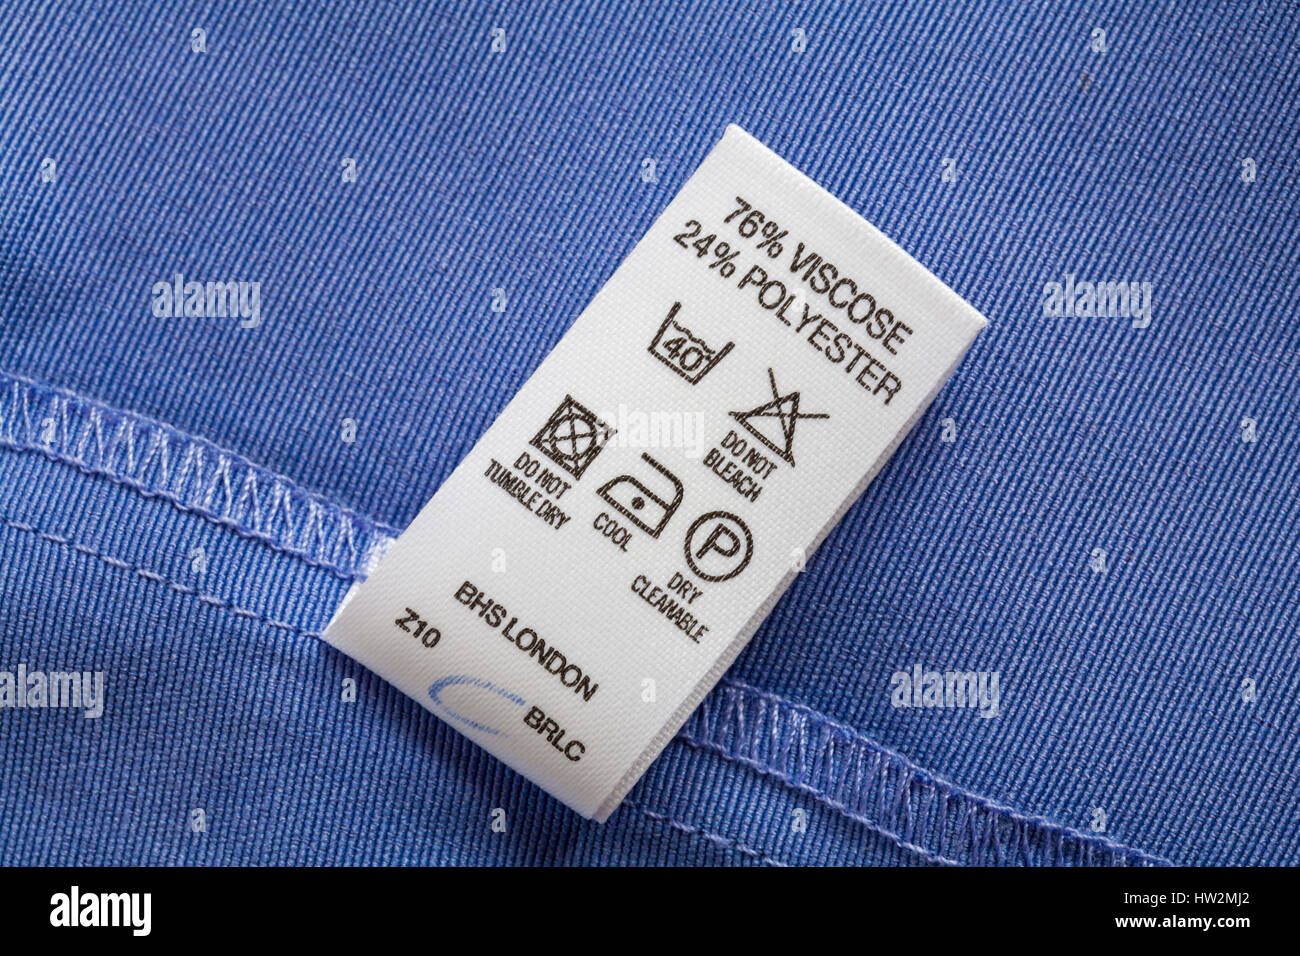 Buy Clothing Labels Uk